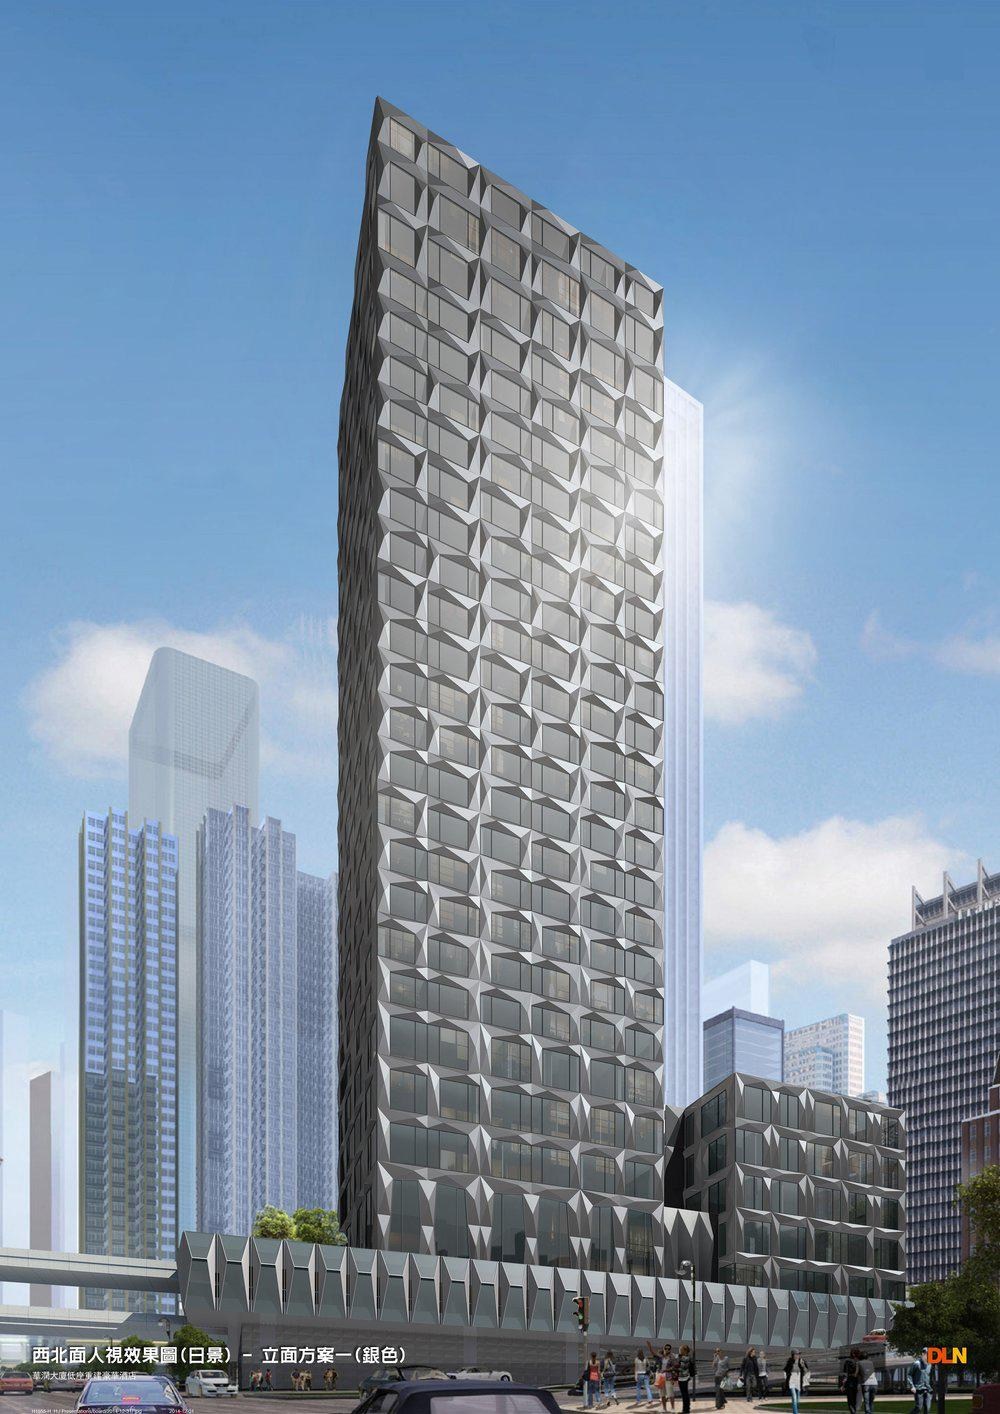 St Regis Hong Kong will be located in a mixed-use tower owned by China Resources Property / Starwood Hotels and Resorts